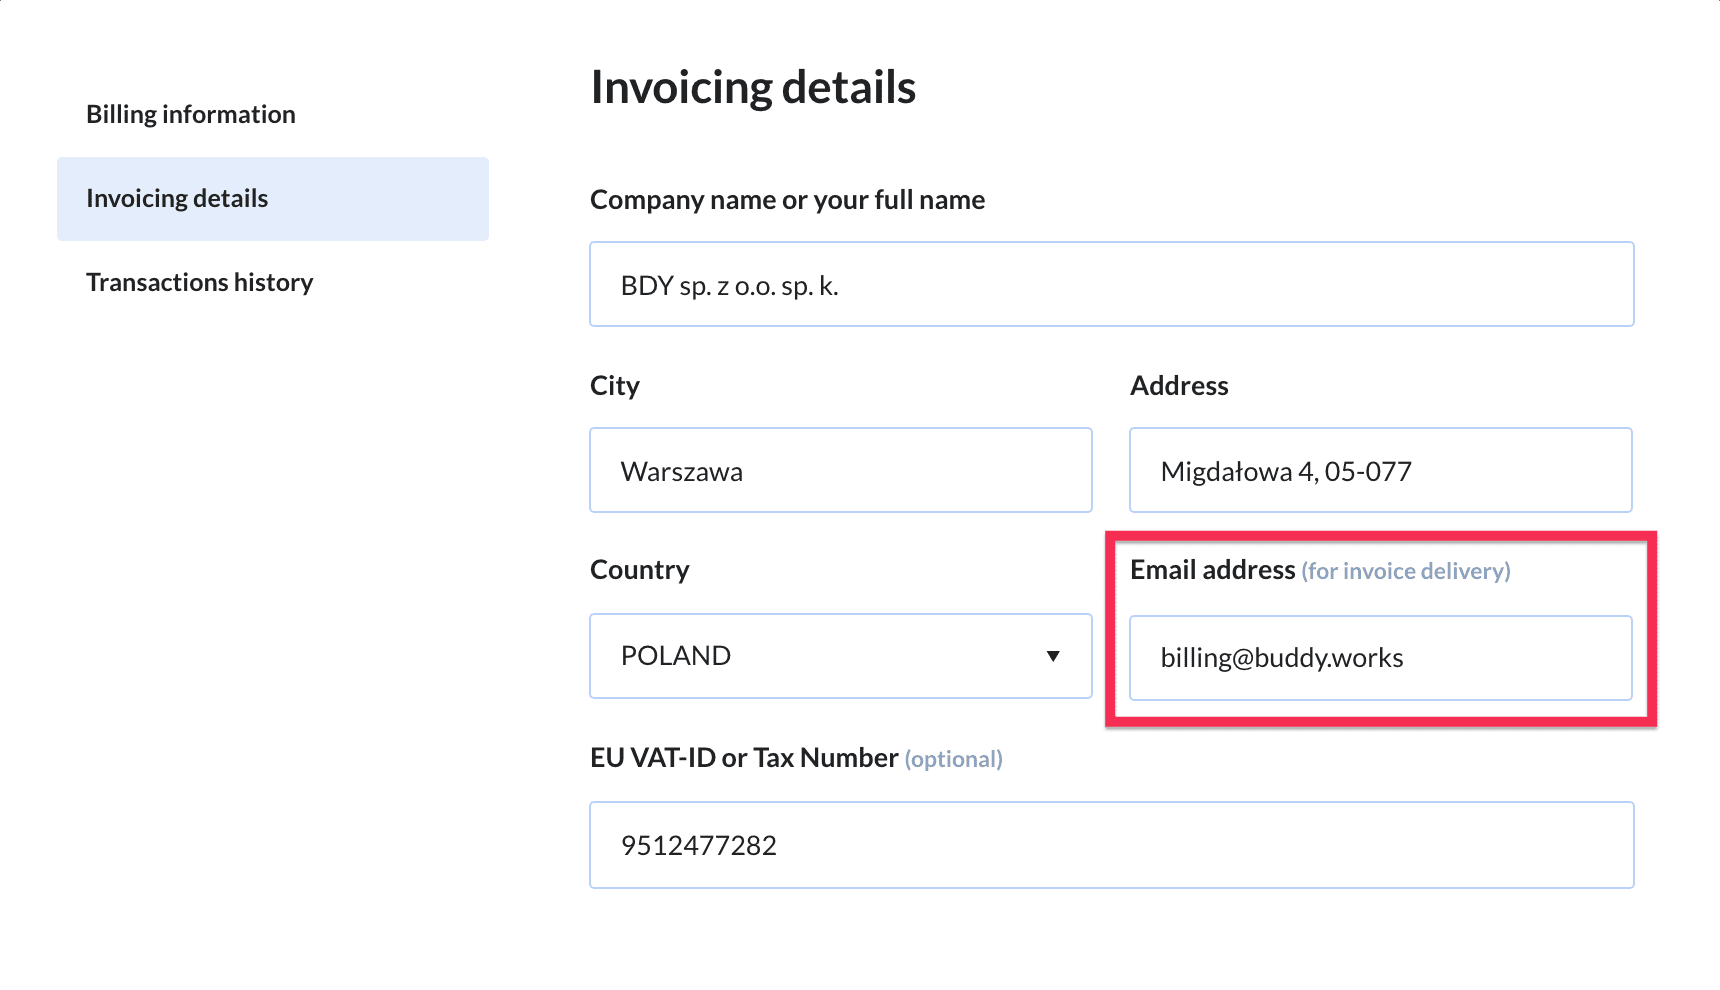 Invoicing email address